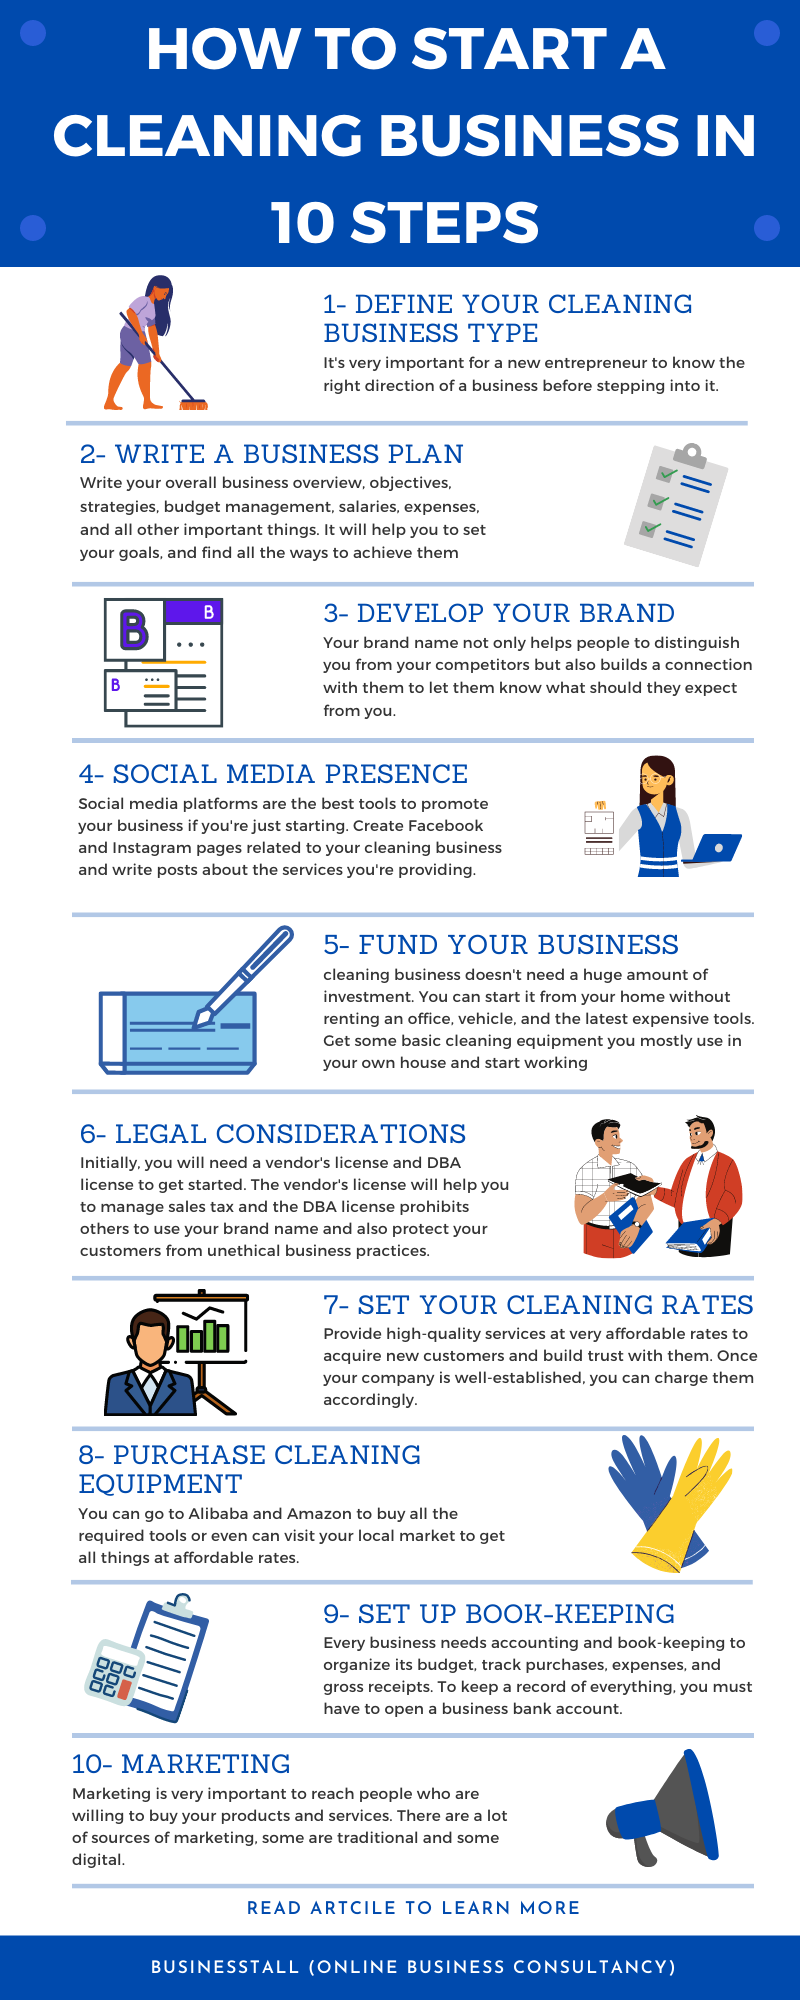 10 Steps to Start a Cleaning Business from Scratch